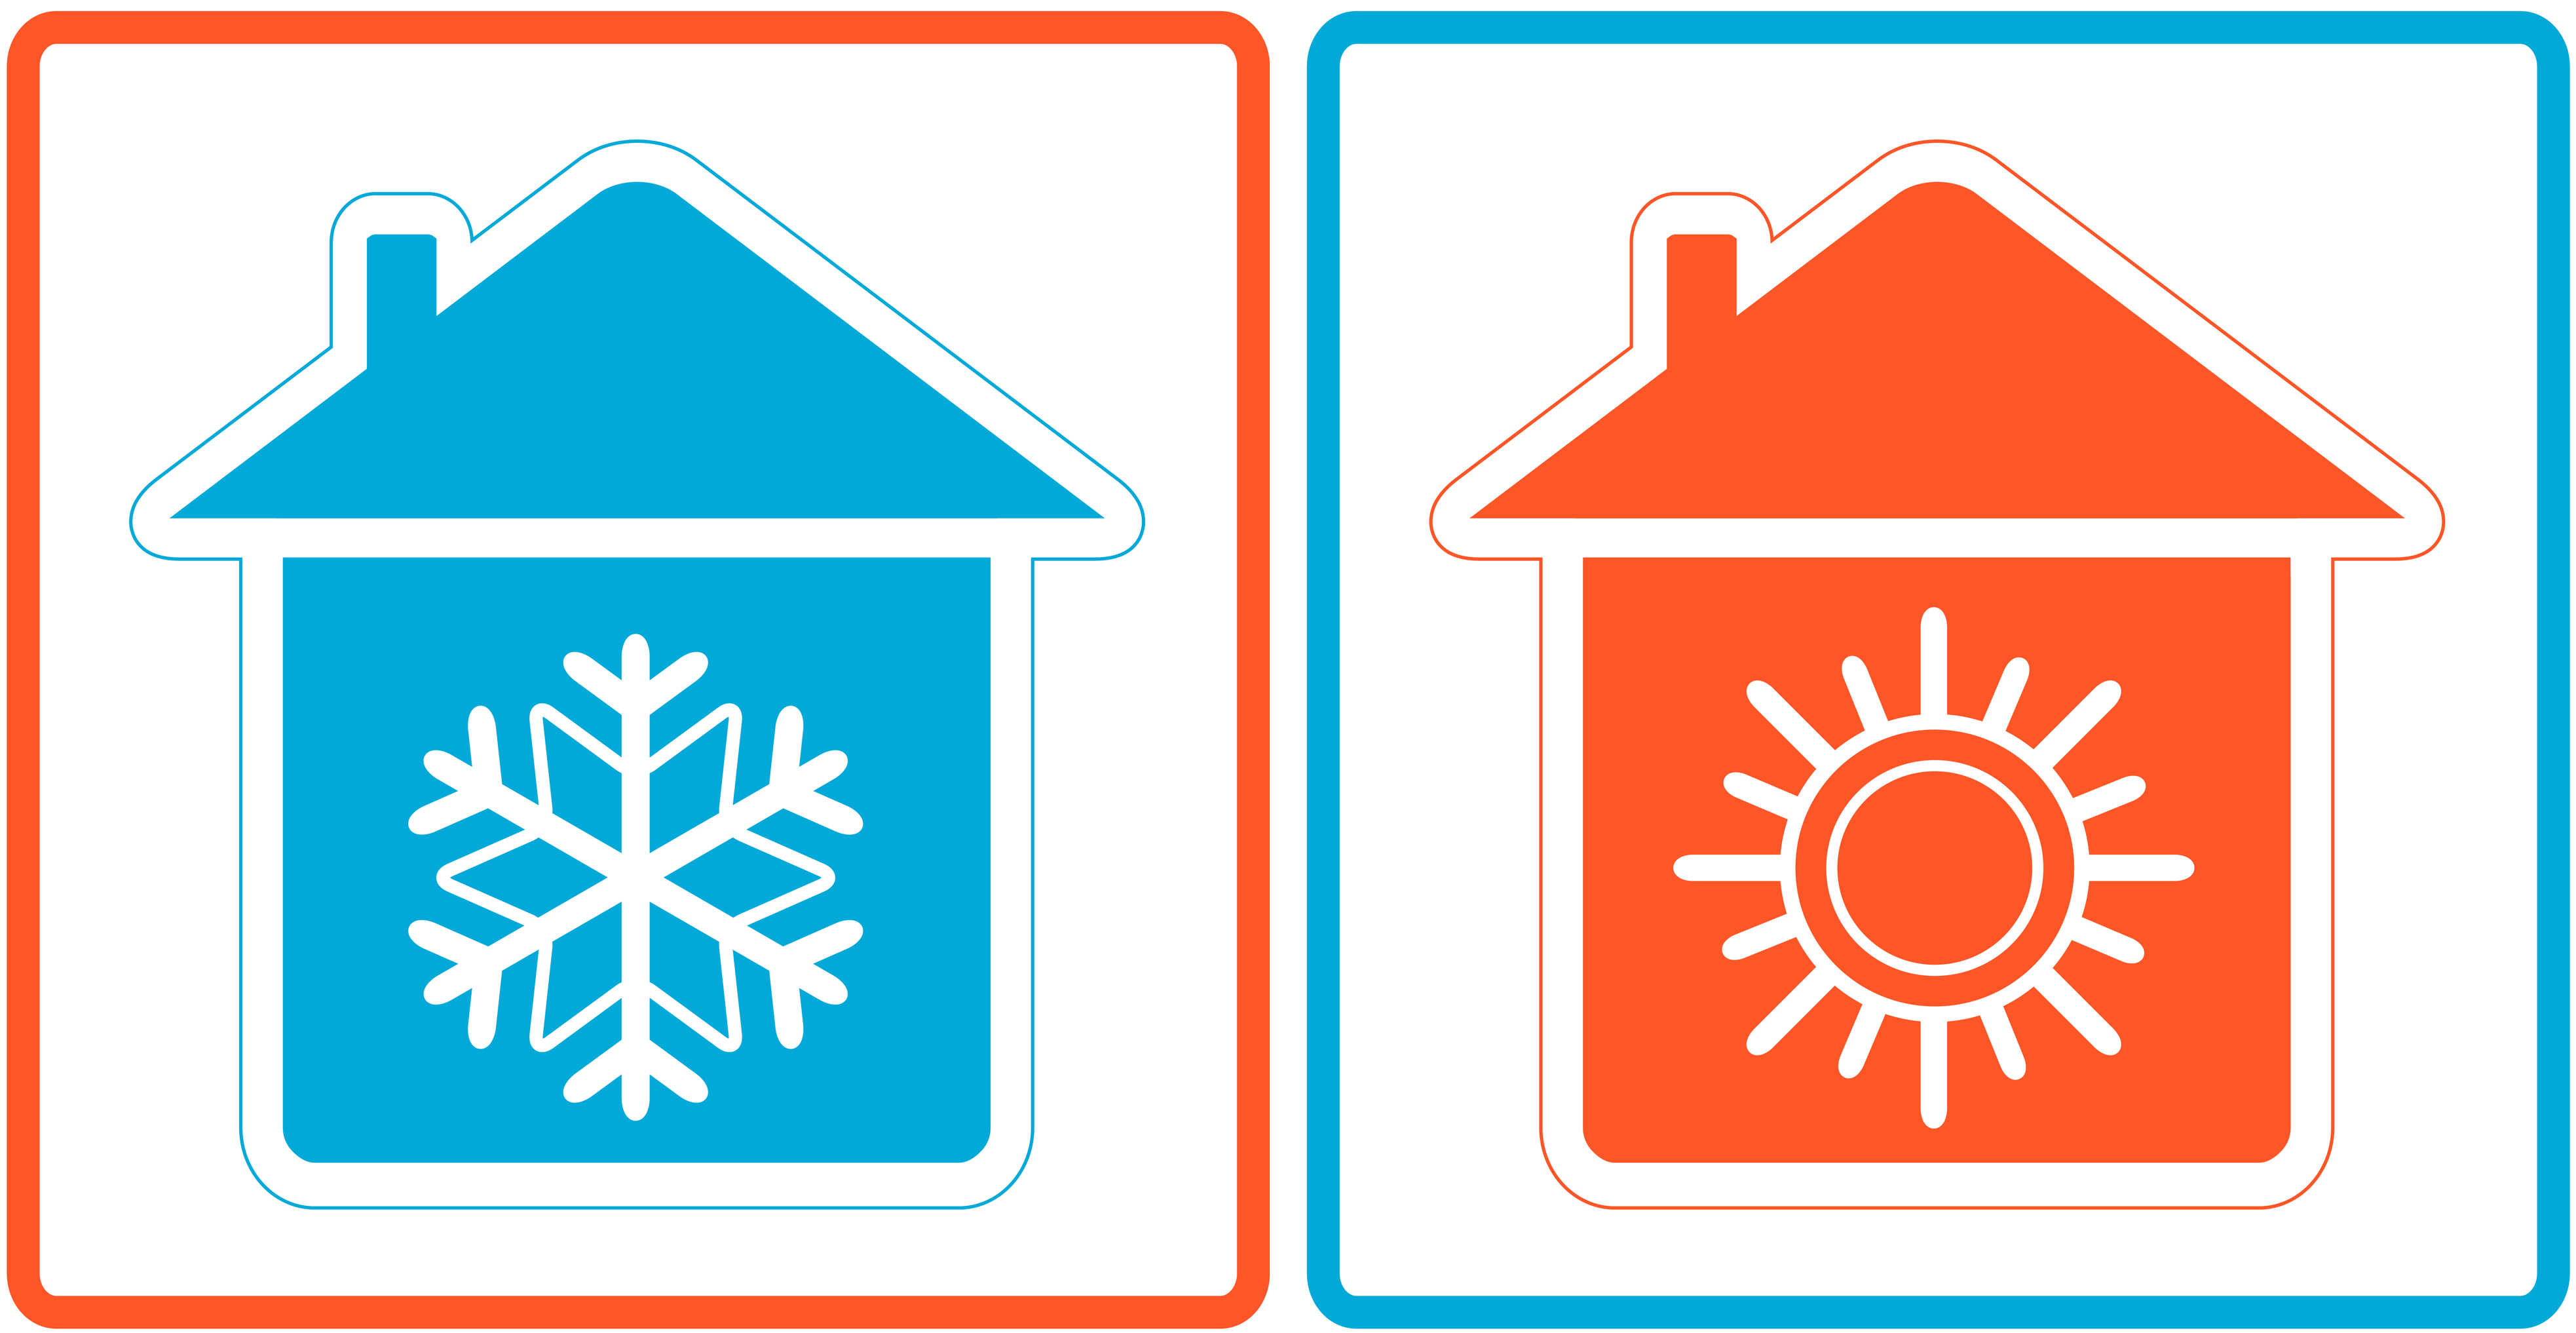 cold-and-hot-house-symbols